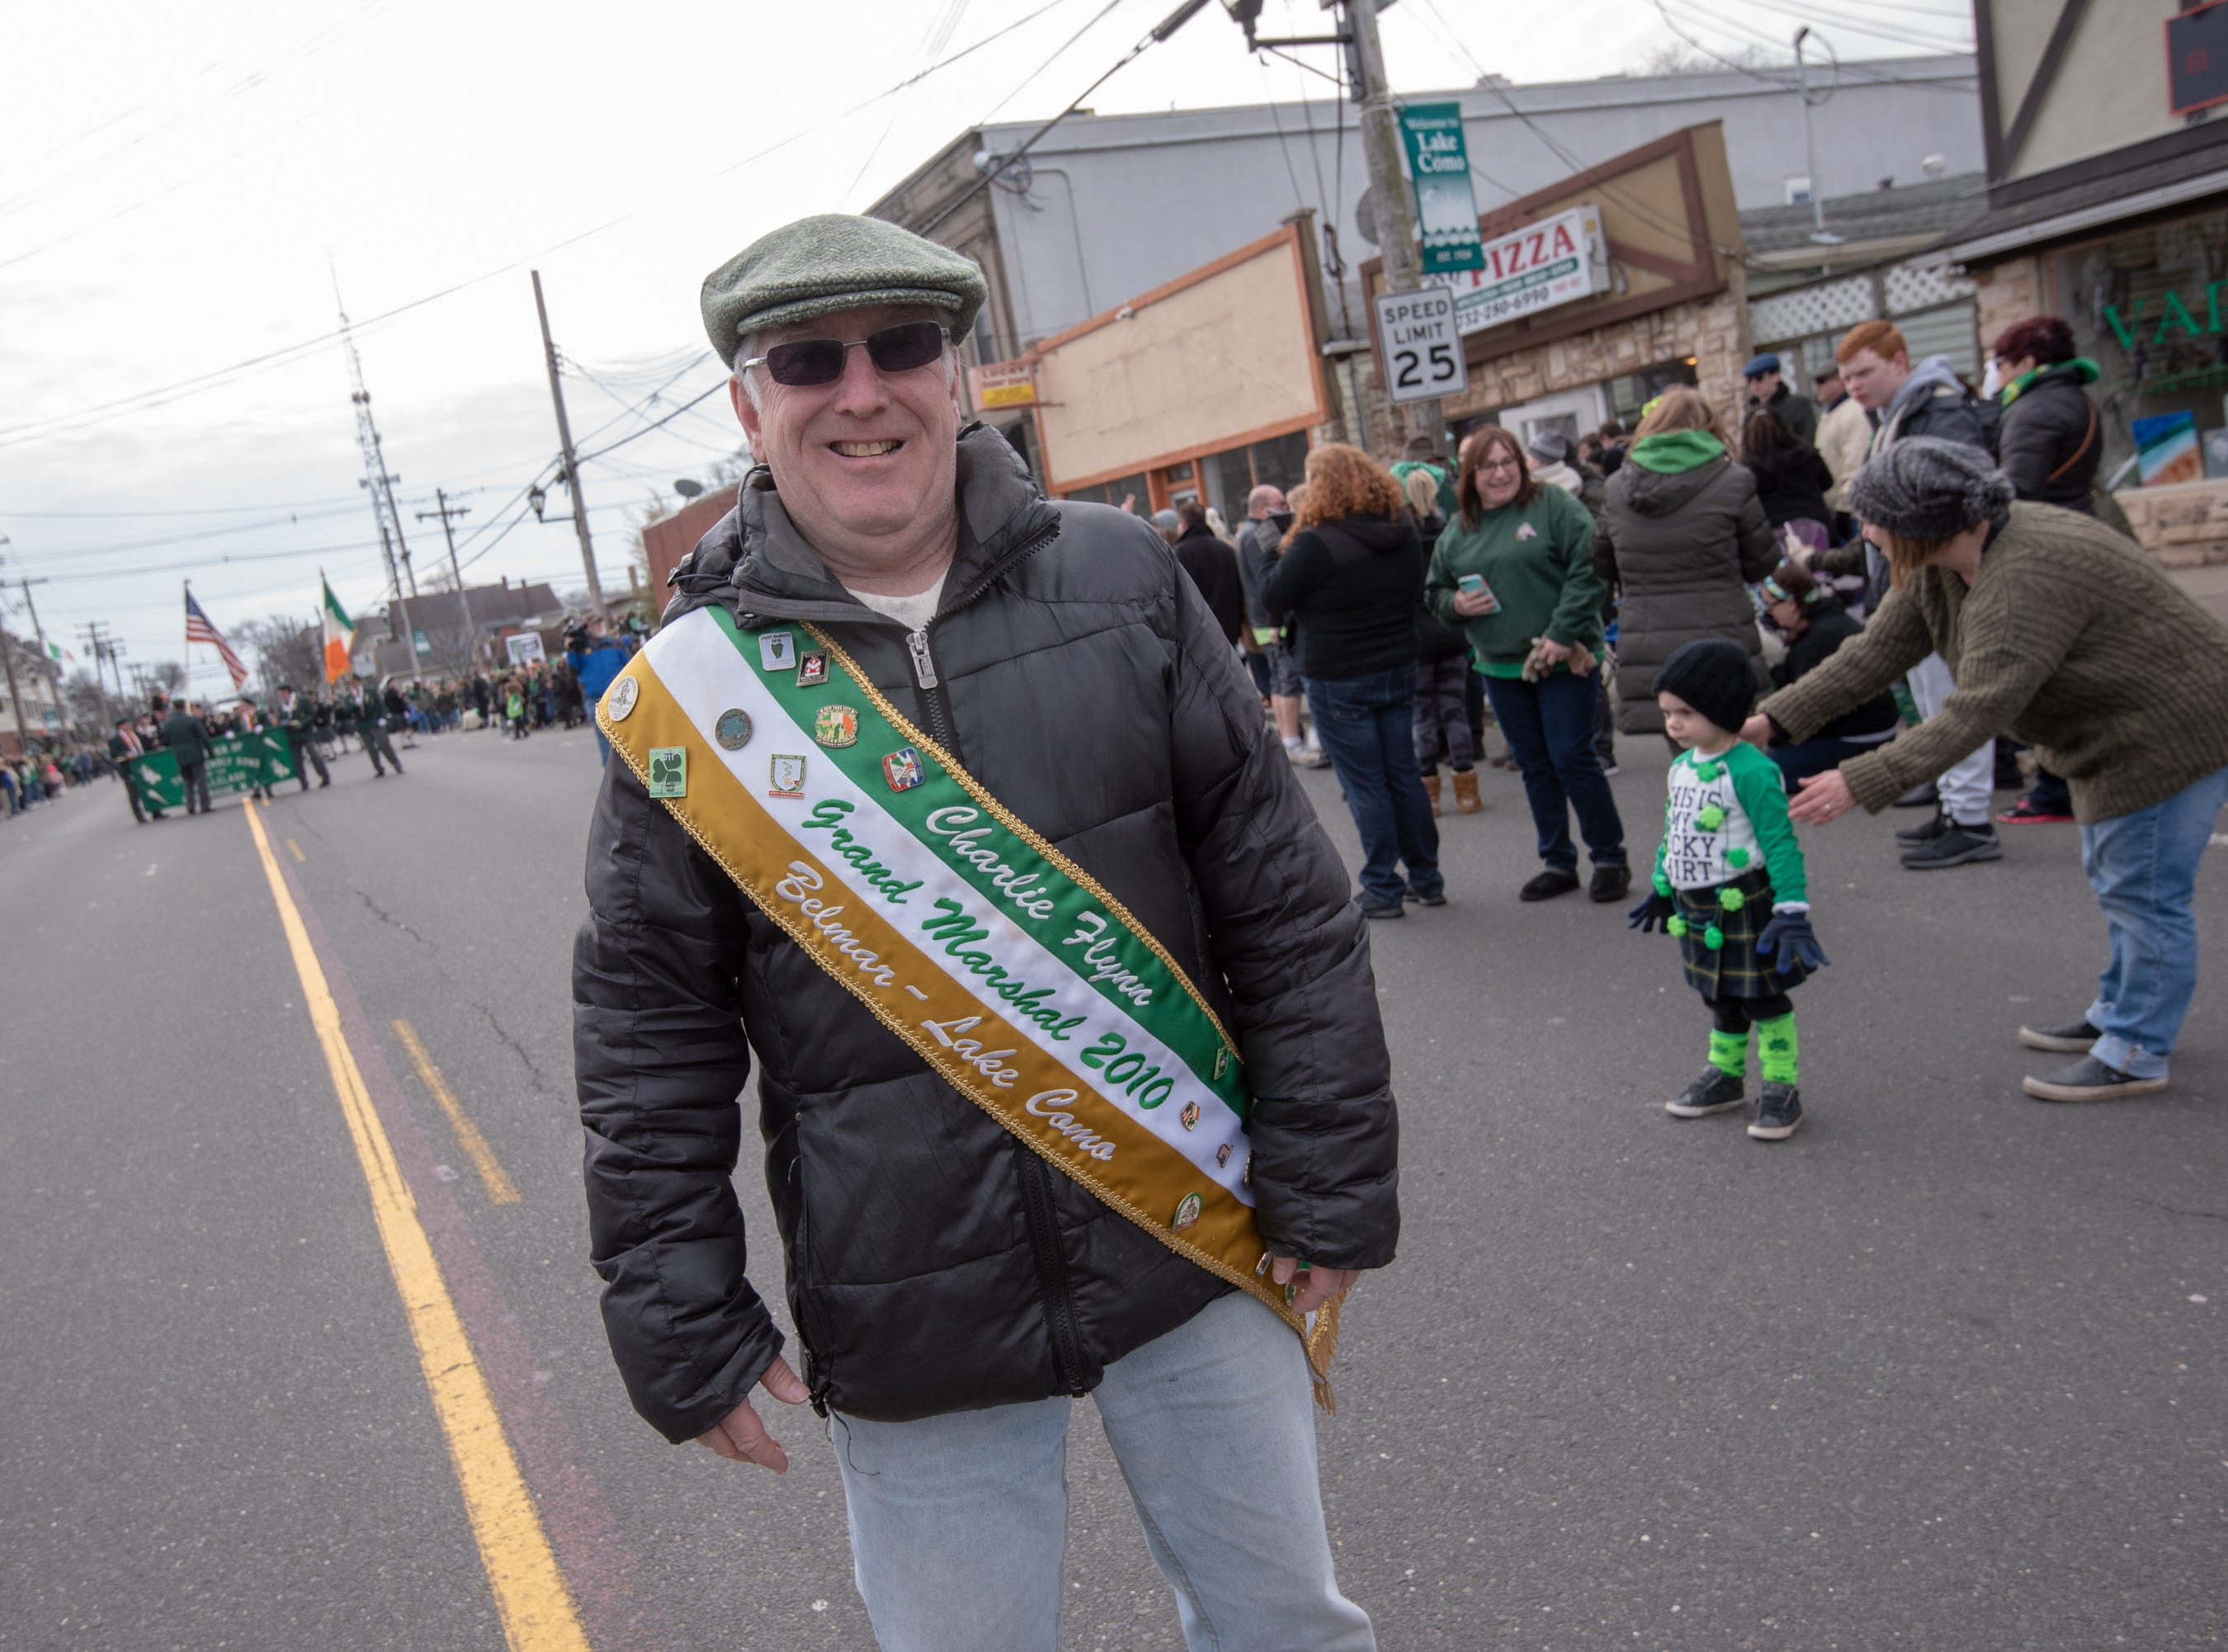 Charlie Flynn was the 2010 Grand Marshal. The 46th annual Belmar/Lake Como St. Patrick's Day Parade was held in Belmar on March 3, 2019.